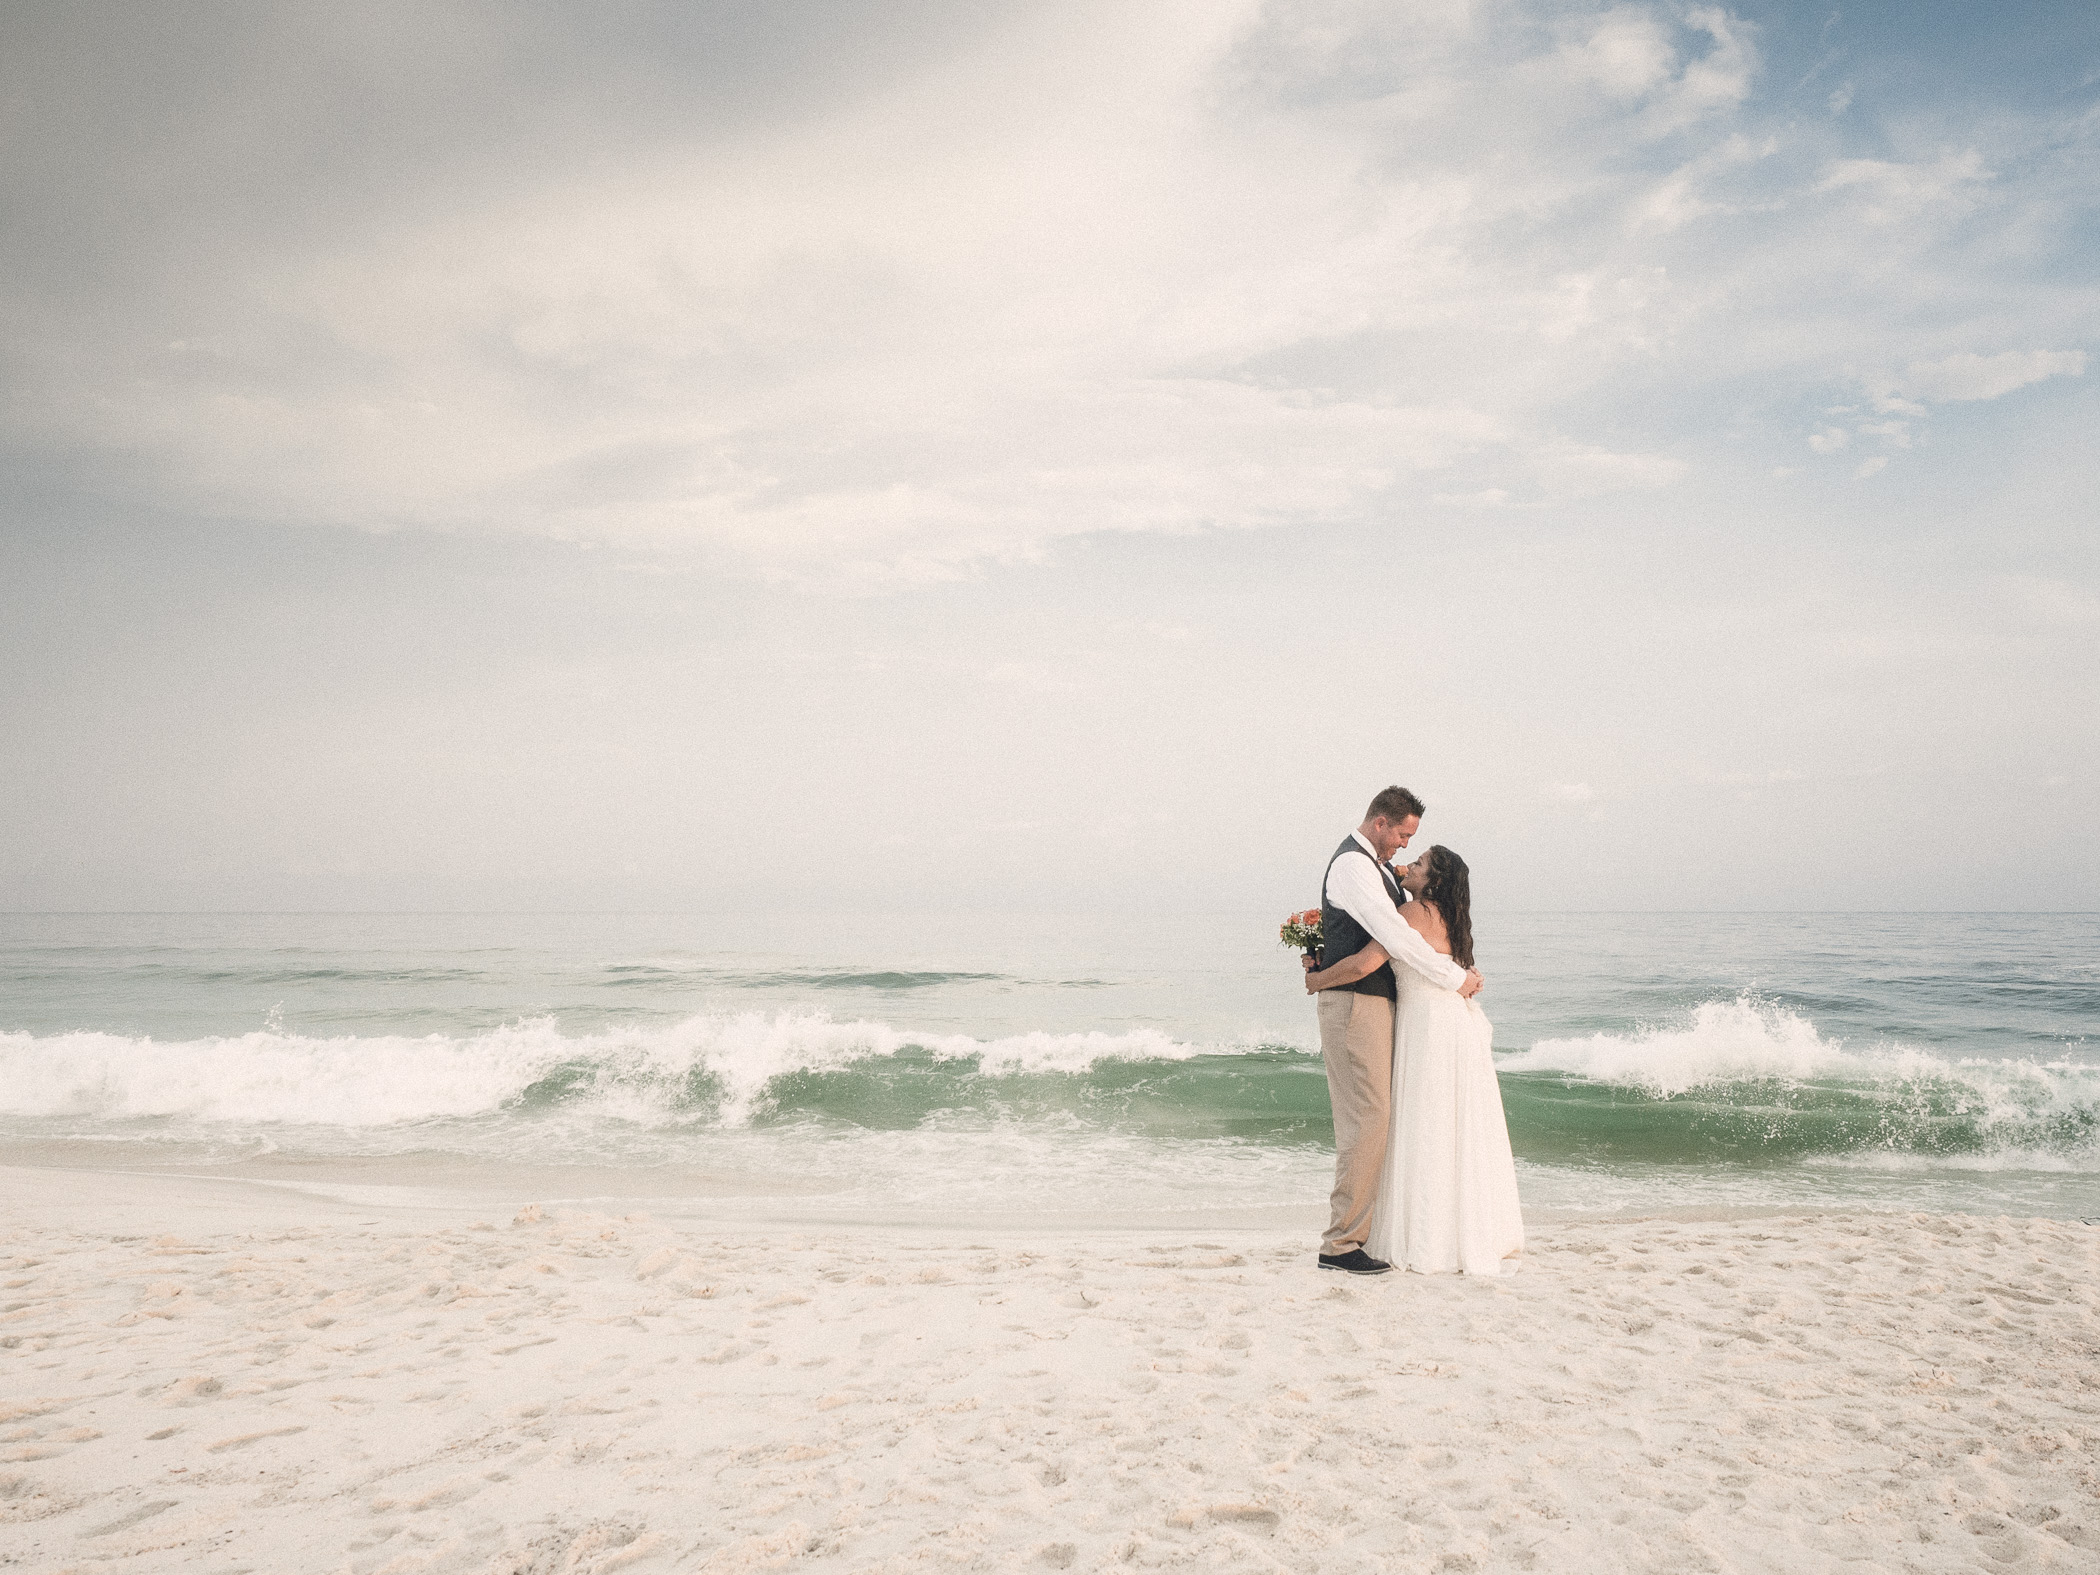 We're Different - Sand Dollar Photographers is a Team of Some of the Leading Photographers in Coastal Alabama.